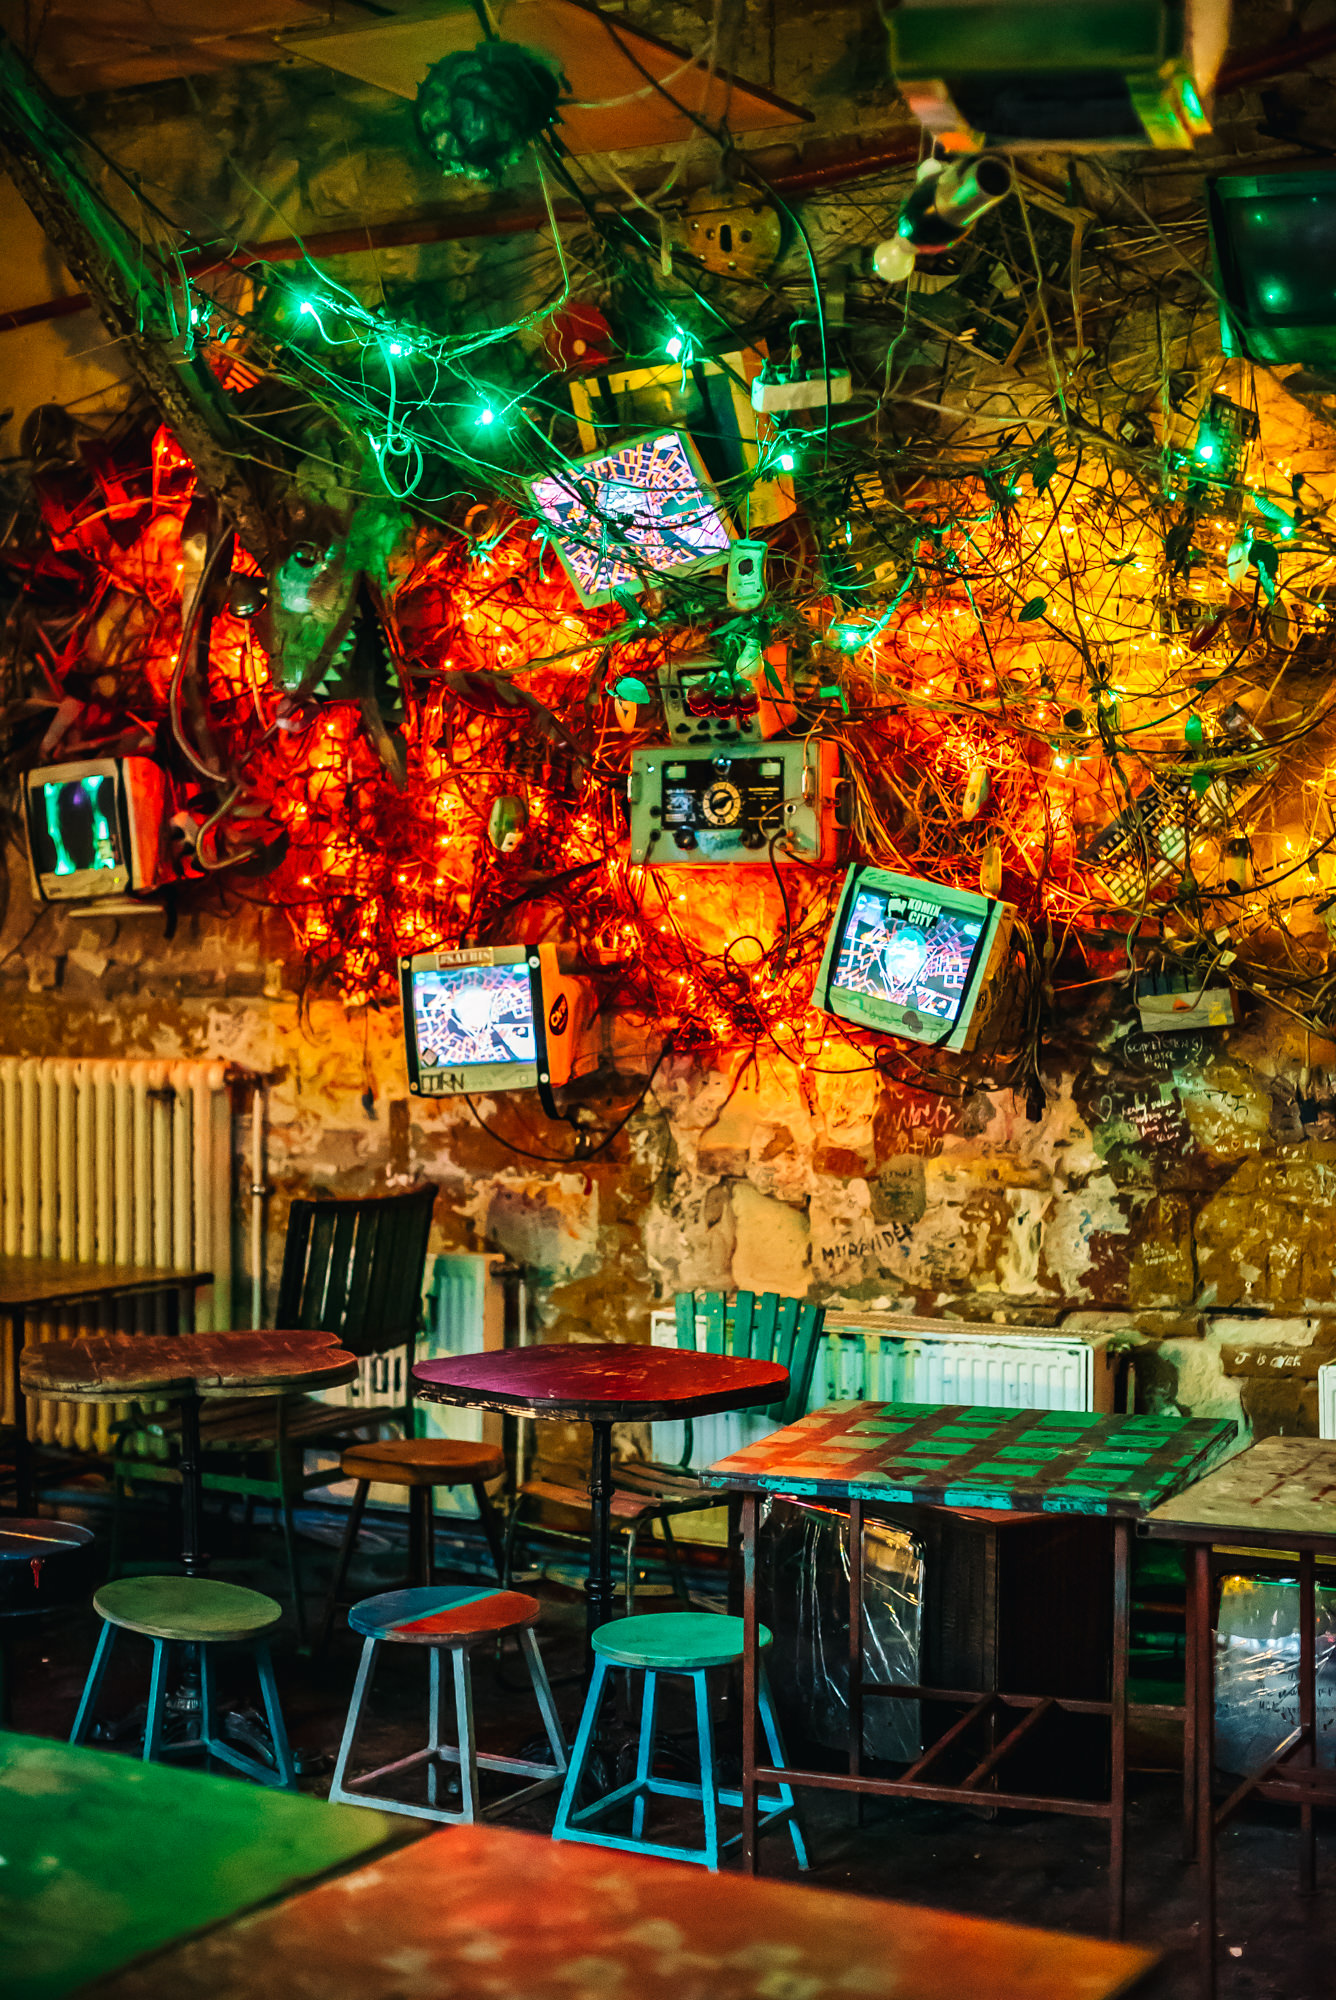 Fun decorations at Szimpla Kert